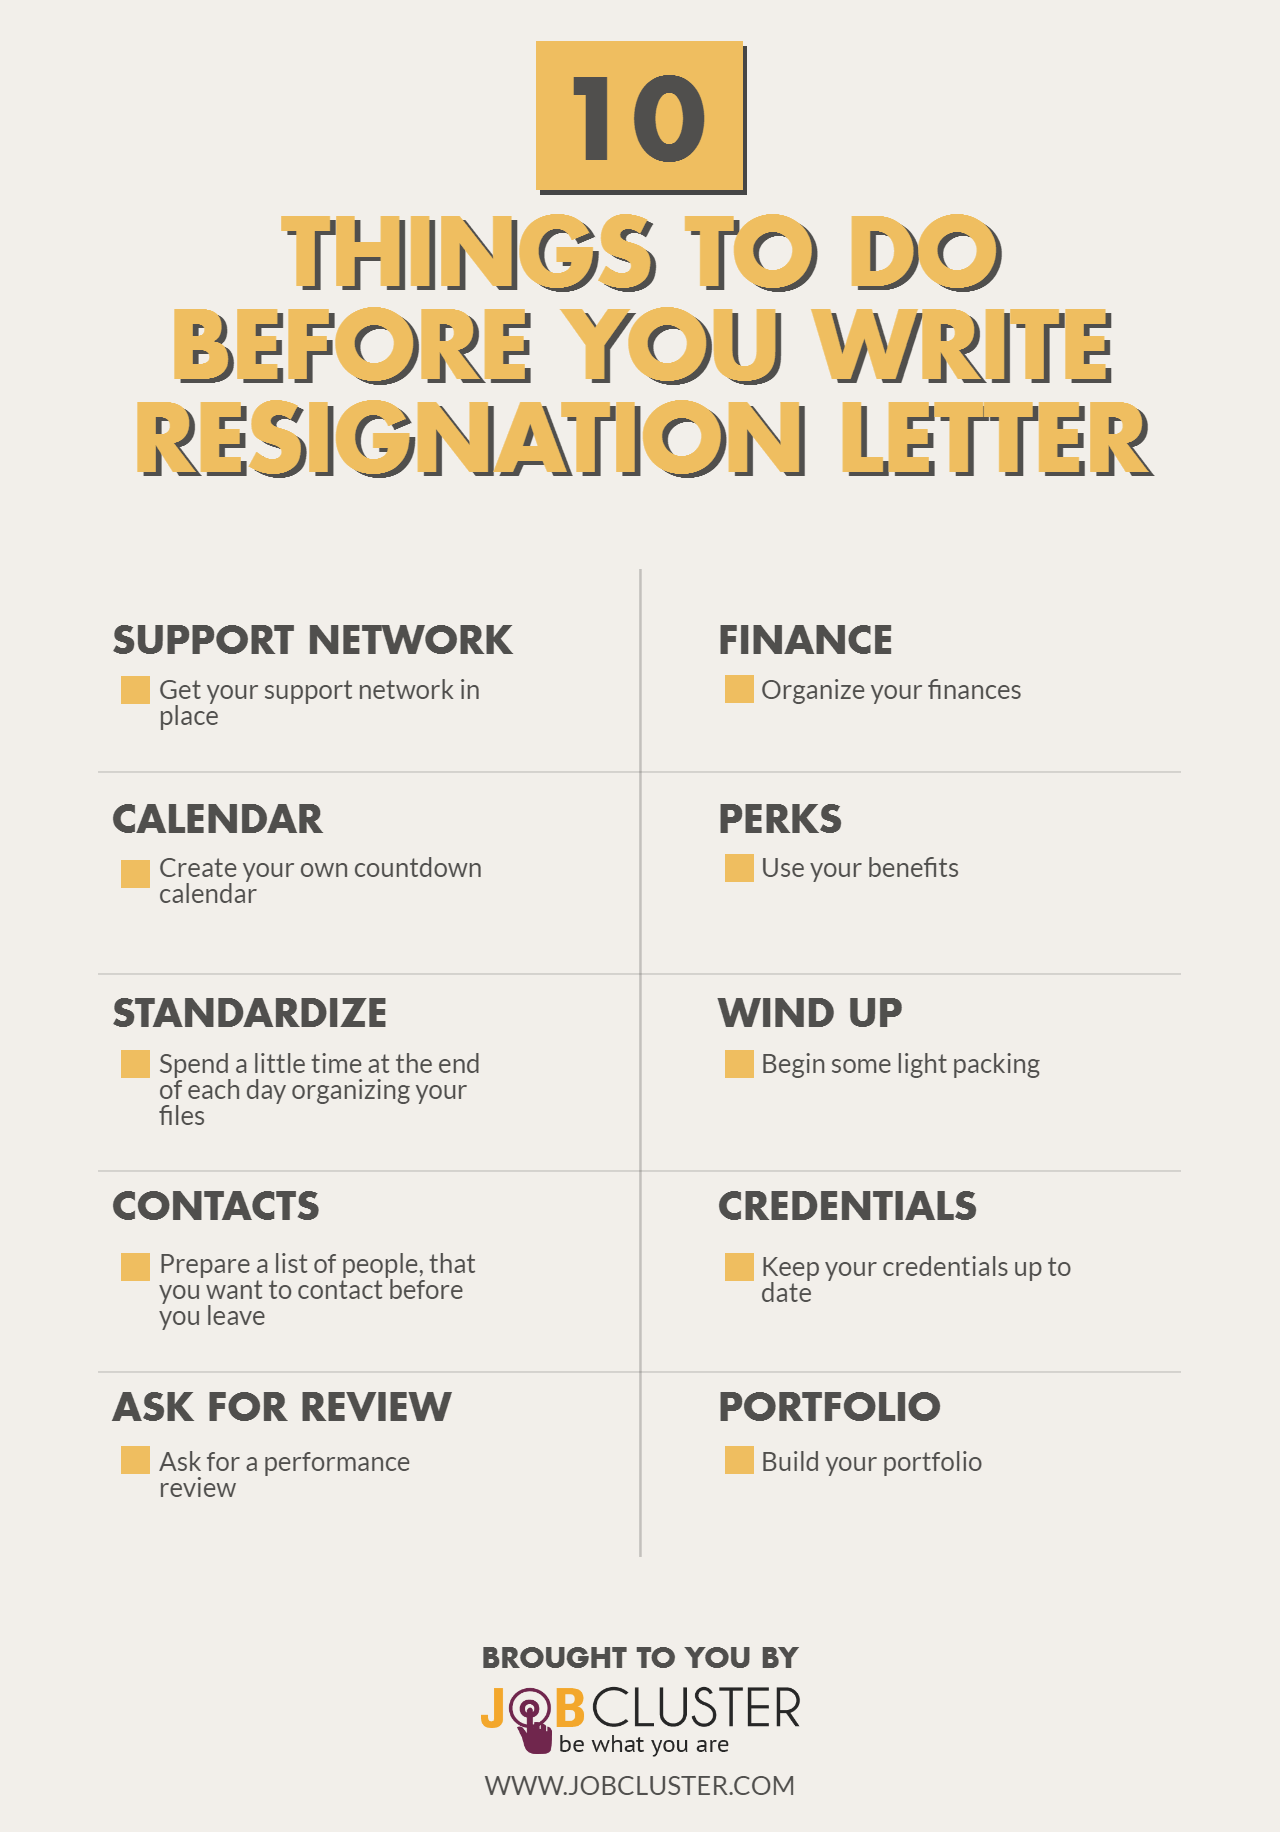 Writing a resignation letter 10 things to do before writing the resign letter expocarfo